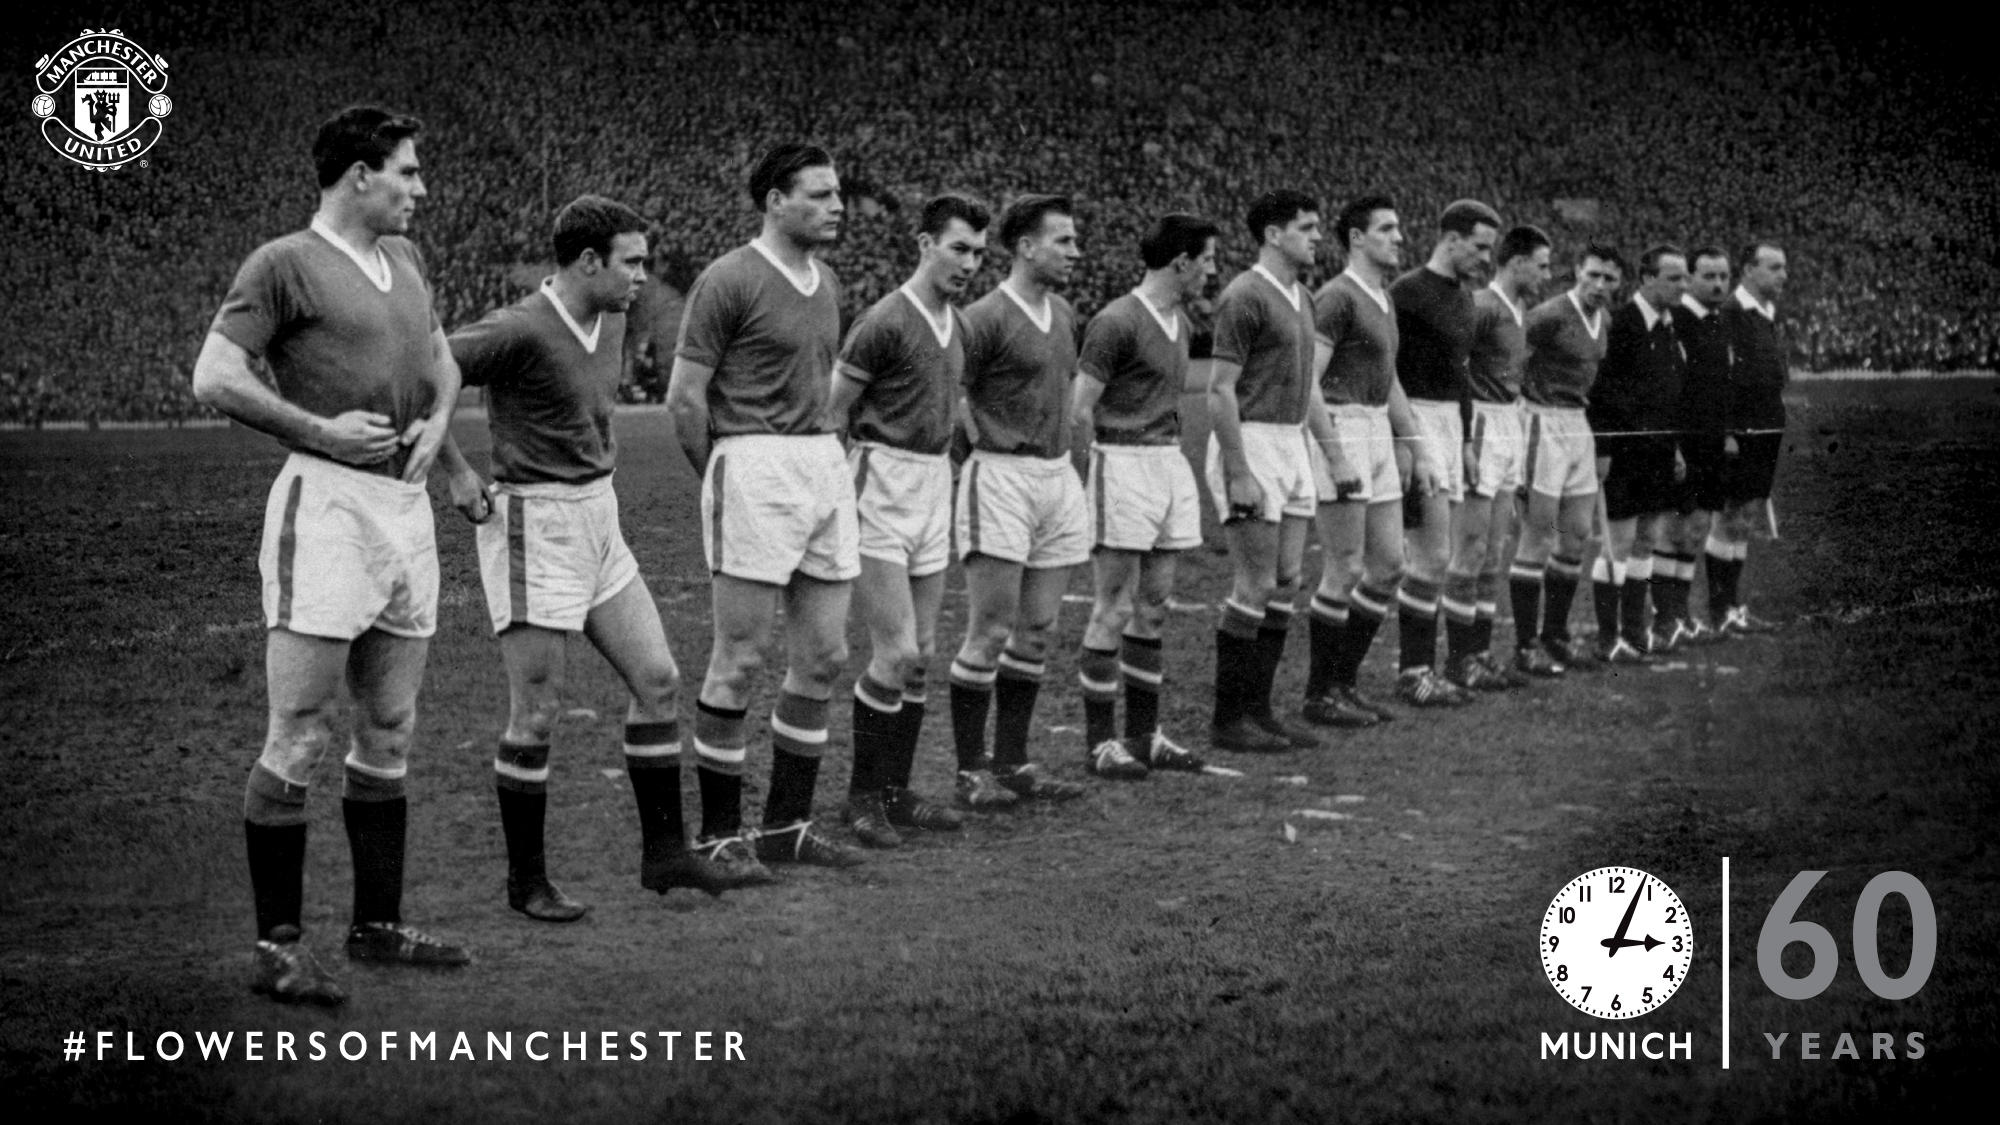 RT @ManUtd: We will never forget. #FlowersOfManchester https://t.co/YAC0Lmqq2W